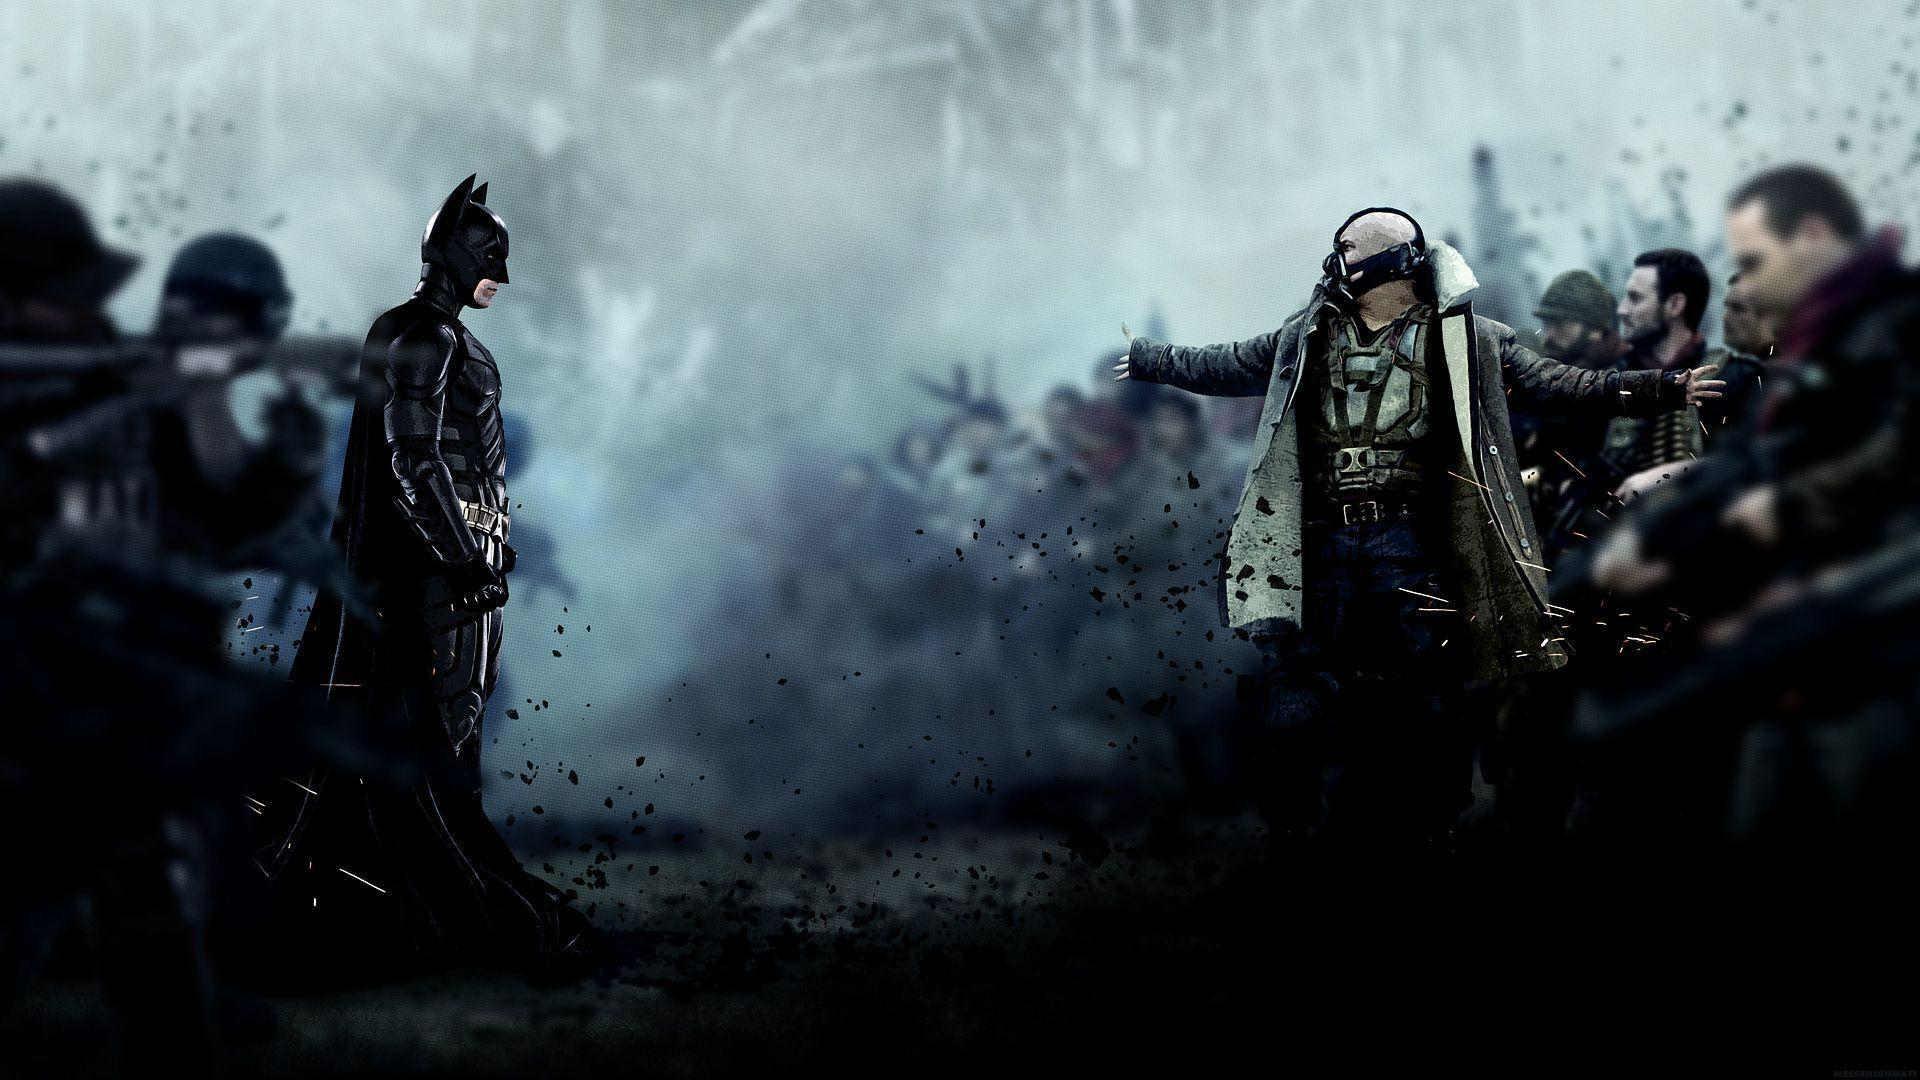 Image For > The Dark Knight Rises Wallpapers Hd 1920x1080